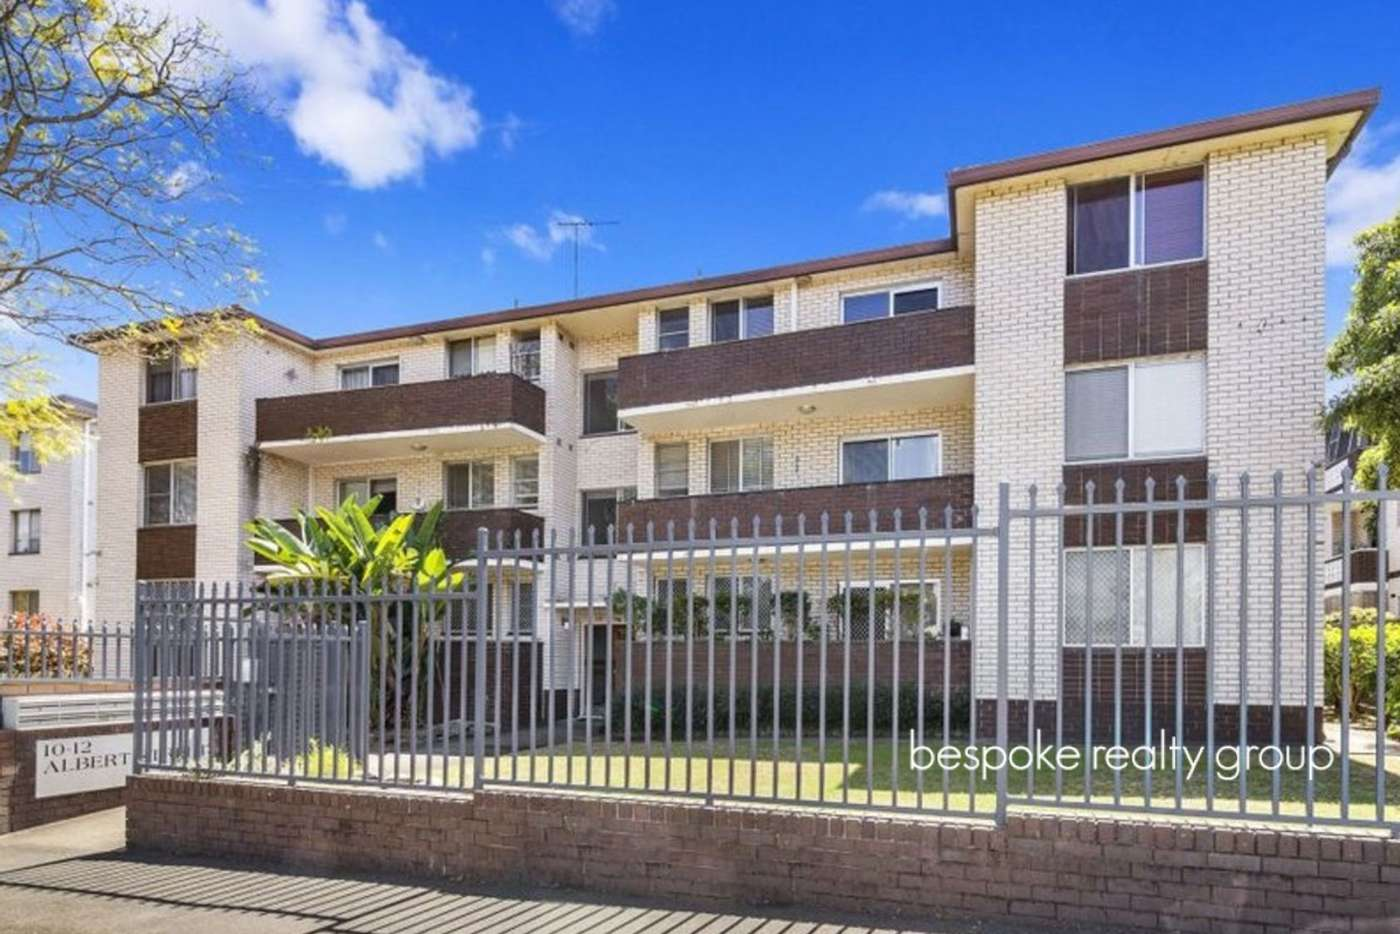 Main view of Homely apartment listing, 9/10-12 Albert Steet, North Parramatta NSW 2151